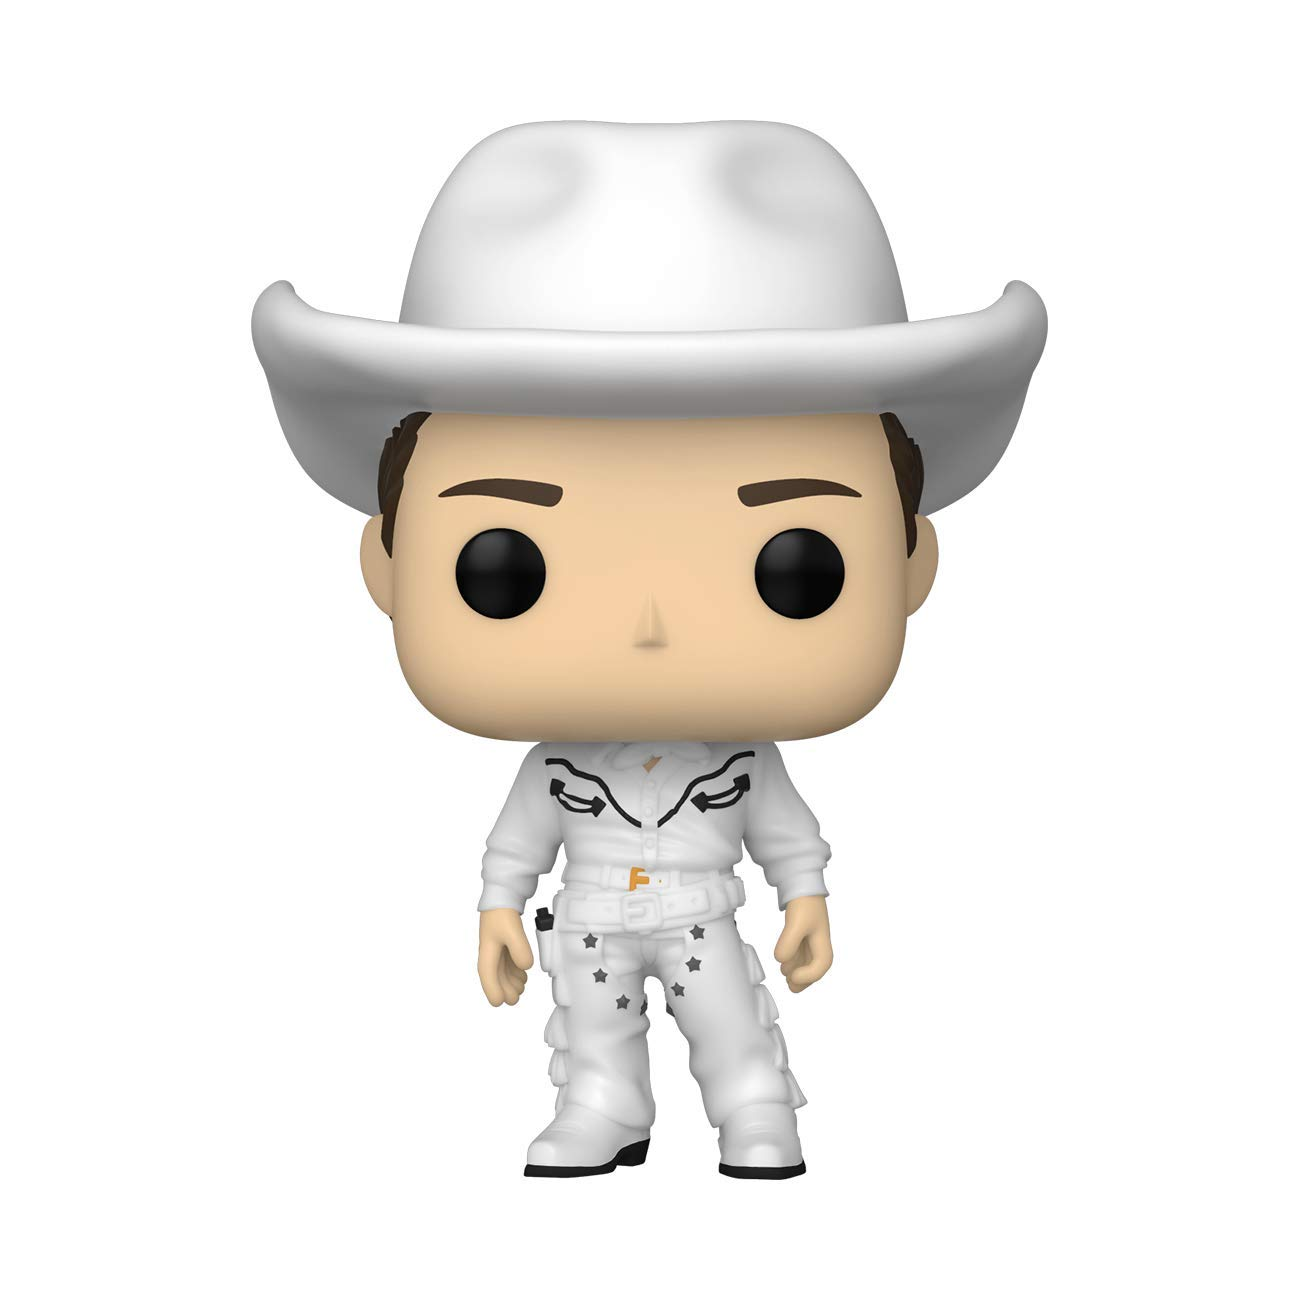 Funko POP TV: Friends- Cowboy Joey Multicolor, 3.75 inches